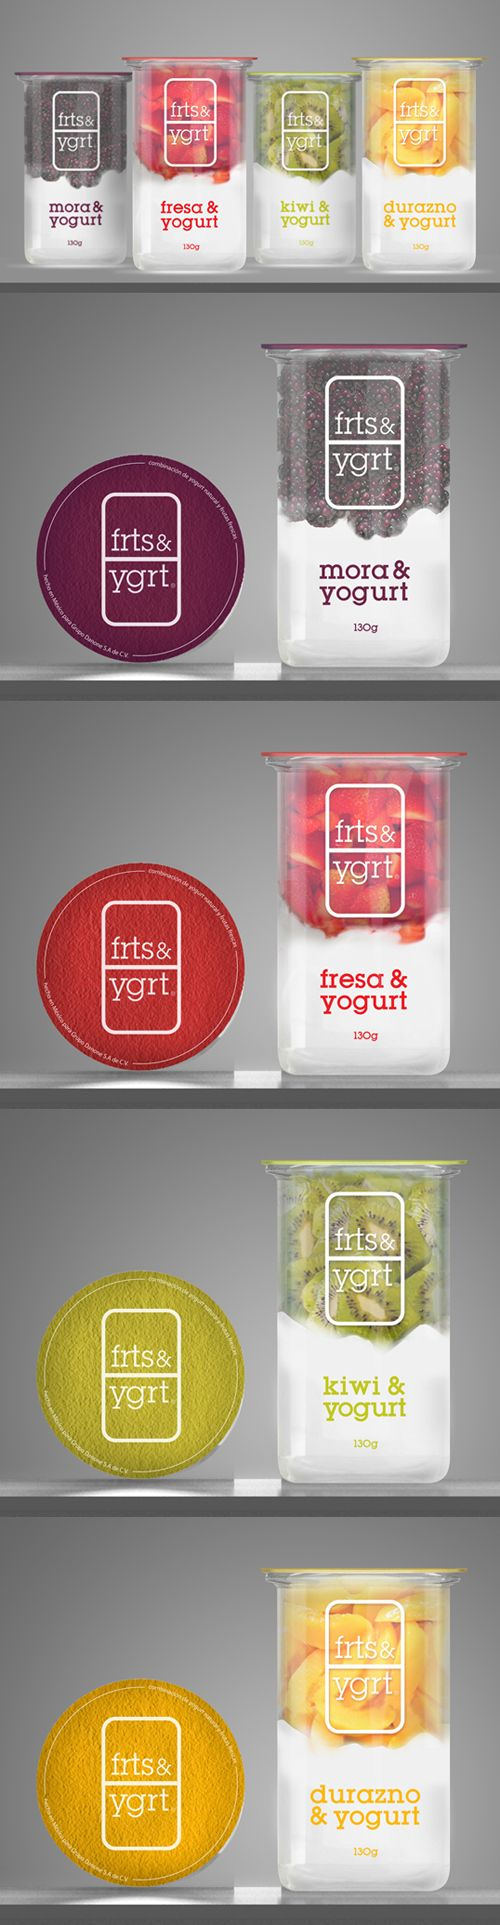 Fruit Yogurt Designed by Mika Kañive. I like the clear #packaging to show off the fruit and yogurt inside.